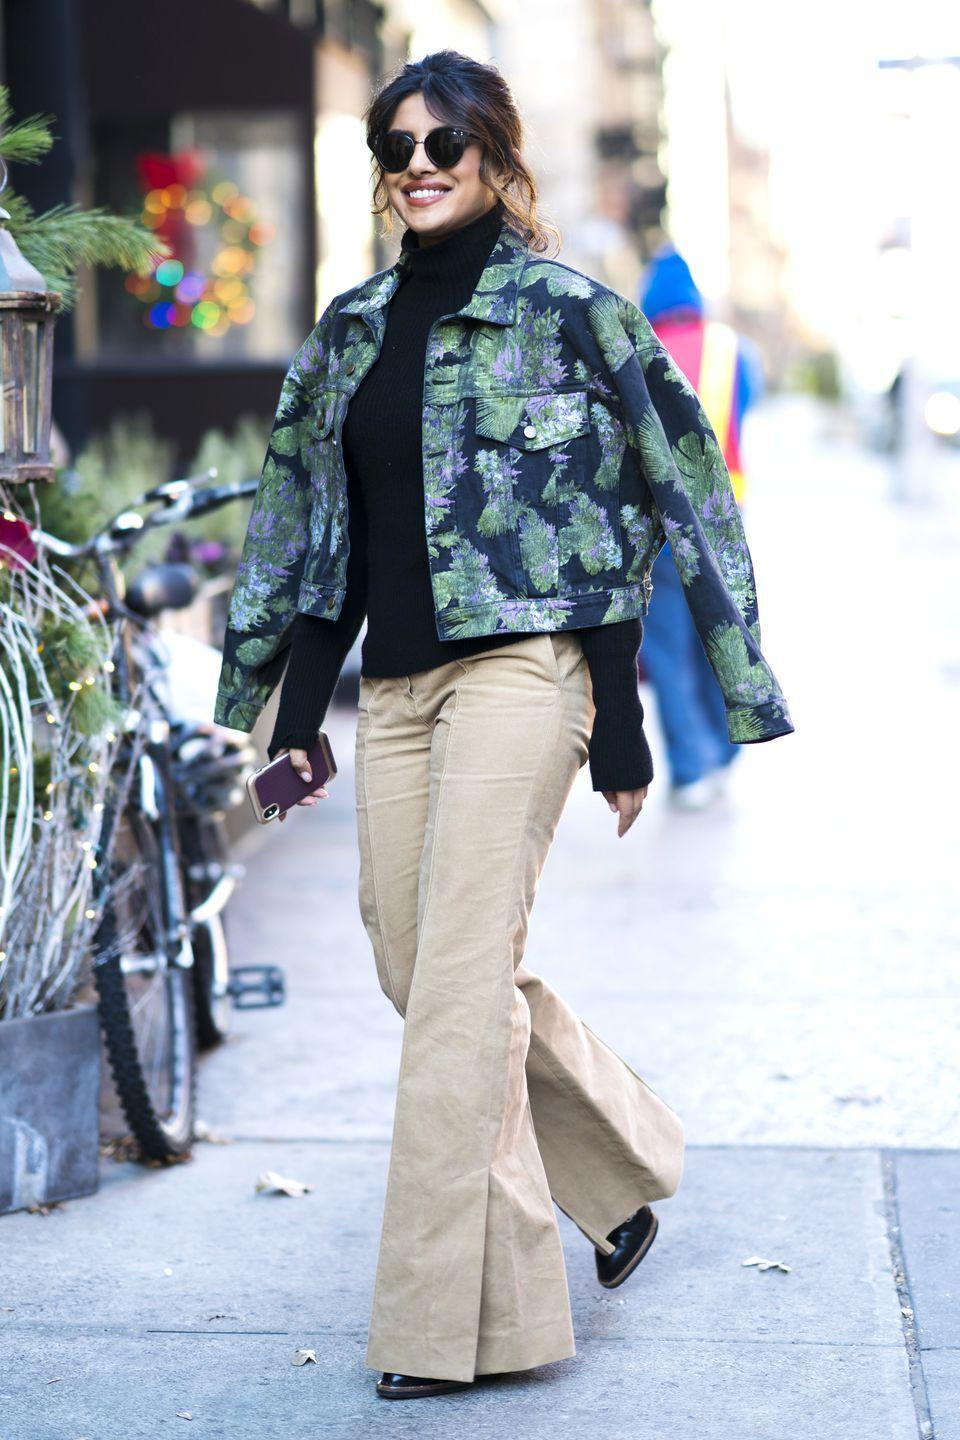 """<p>Regardless of the season, a floral denim jacket adds a feminine touch to neutral basics. Take style cue from Priyanka Chopra and go for an unexpected color combo. </p><p><em>Alice + Olivia floral denim jacket, $95, <a href=""""https://www.neimanmarcus.com/p/paige-harrison-button-front-denim-jacket-with-floral-embossing-prod206660001?childItemId=NMTWHY5_"""" rel=""""nofollow noopener"""" target=""""_blank"""" data-ylk=""""slk:neimanmarcus.com"""" class=""""link rapid-noclick-resp"""">neimanmarcus.com</a>.</em></p><p><a class=""""link rapid-noclick-resp"""" href=""""https://www.neimanmarcus.com/p/paige-harrison-button-front-denim-jacket-with-floral-embossing-prod206660001?childItemId=NMTWHY5_"""" rel=""""nofollow noopener"""" target=""""_blank"""" data-ylk=""""slk:SHOP"""">SHOP</a><br></p>"""